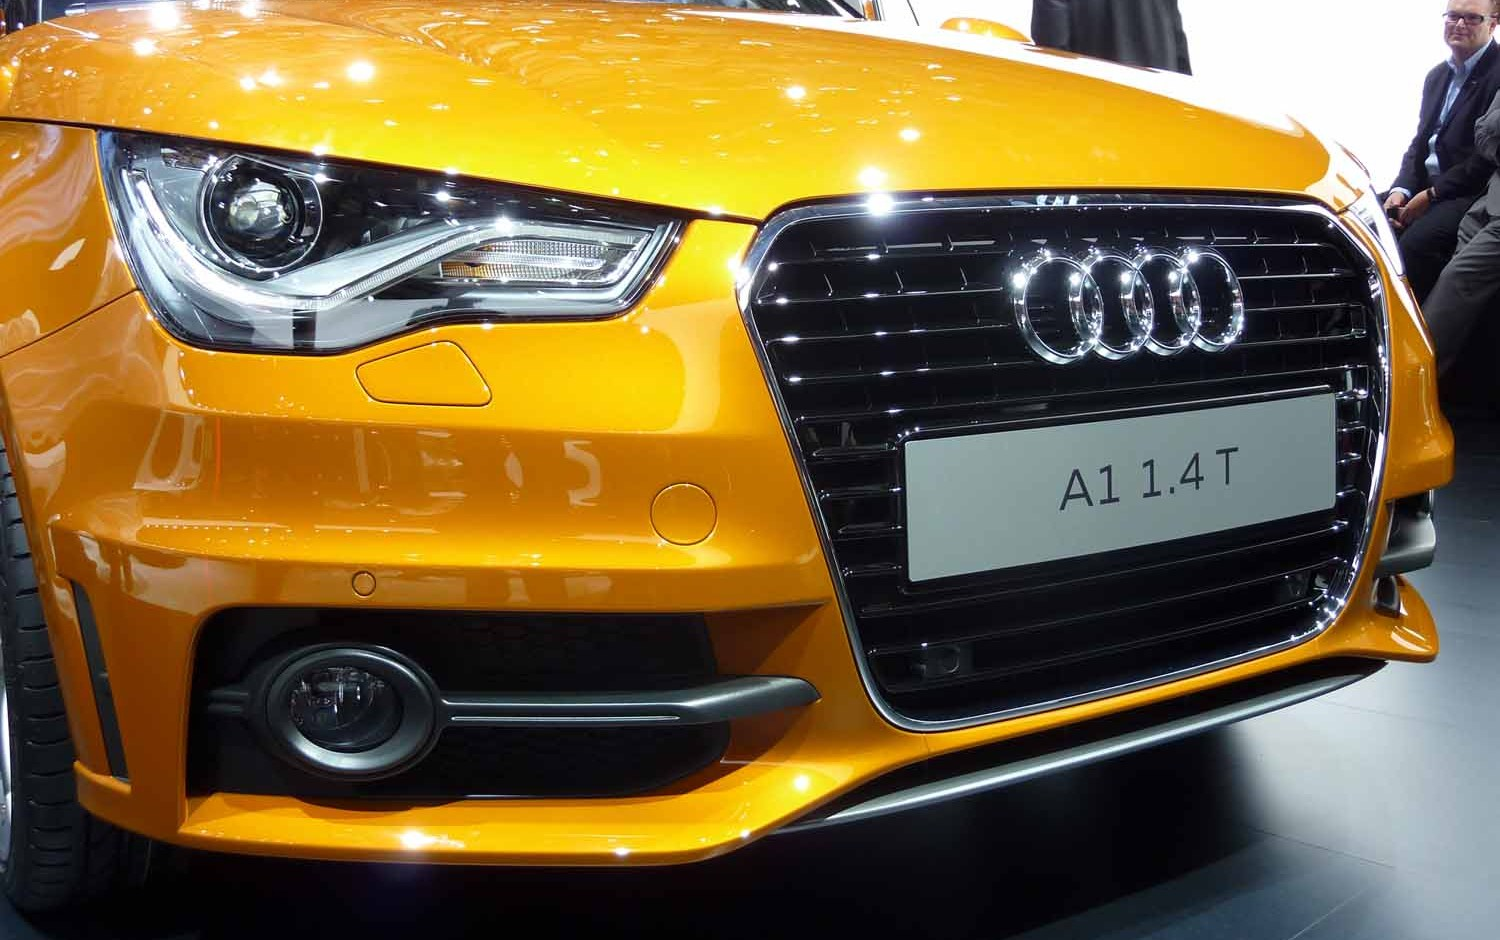 2010++A1+Audi+1.4+T+S-Line,+the+color+of